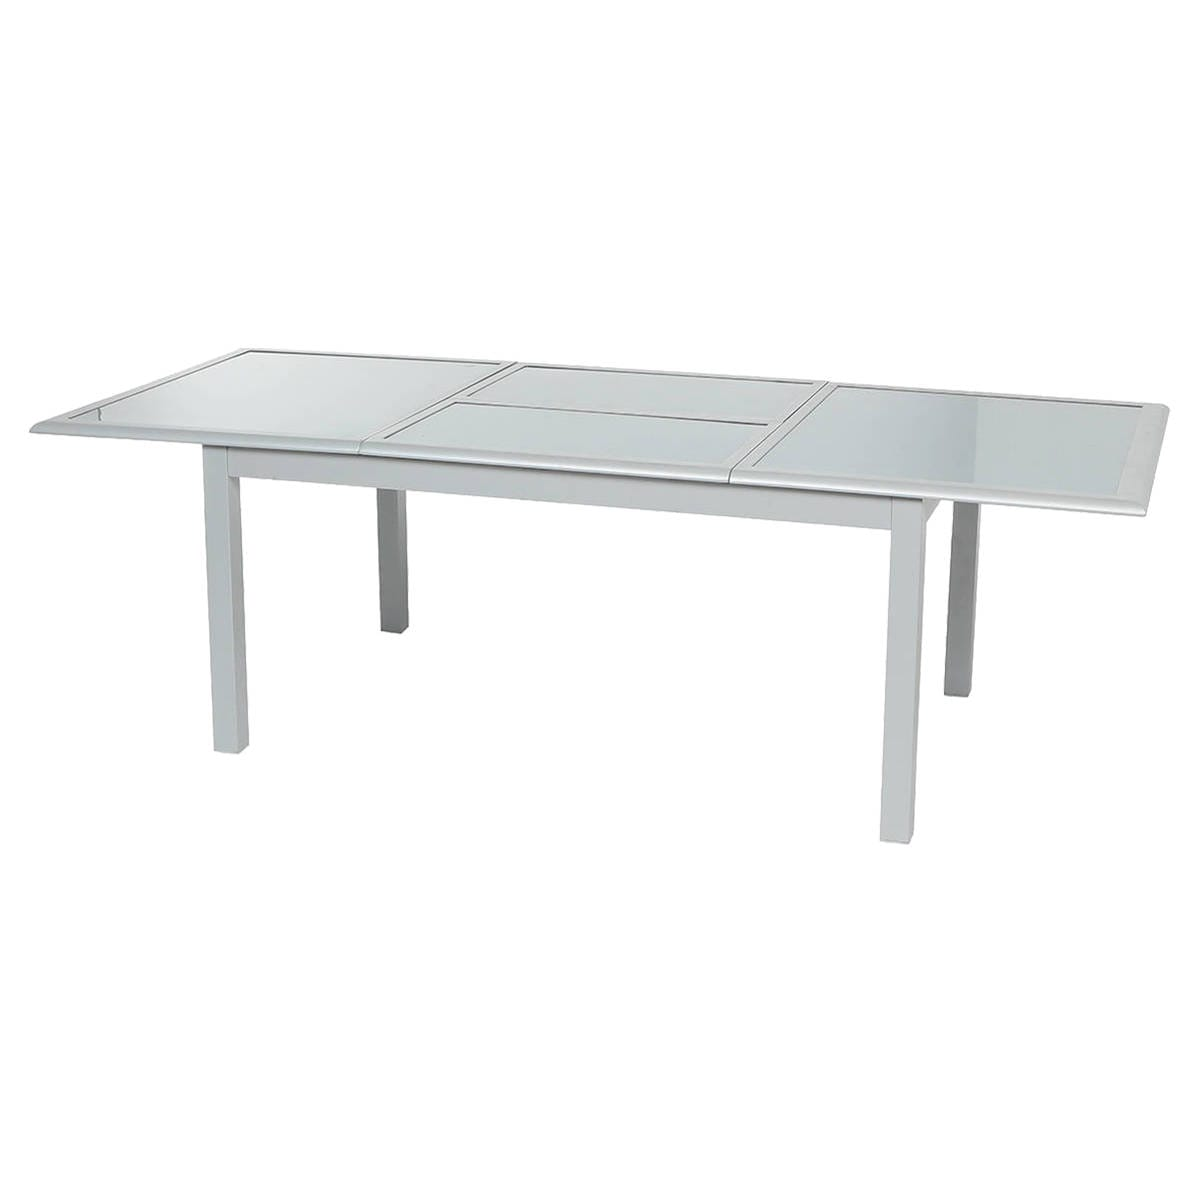 Awesome table de jardin extensible verre contemporary for Table extensible resine